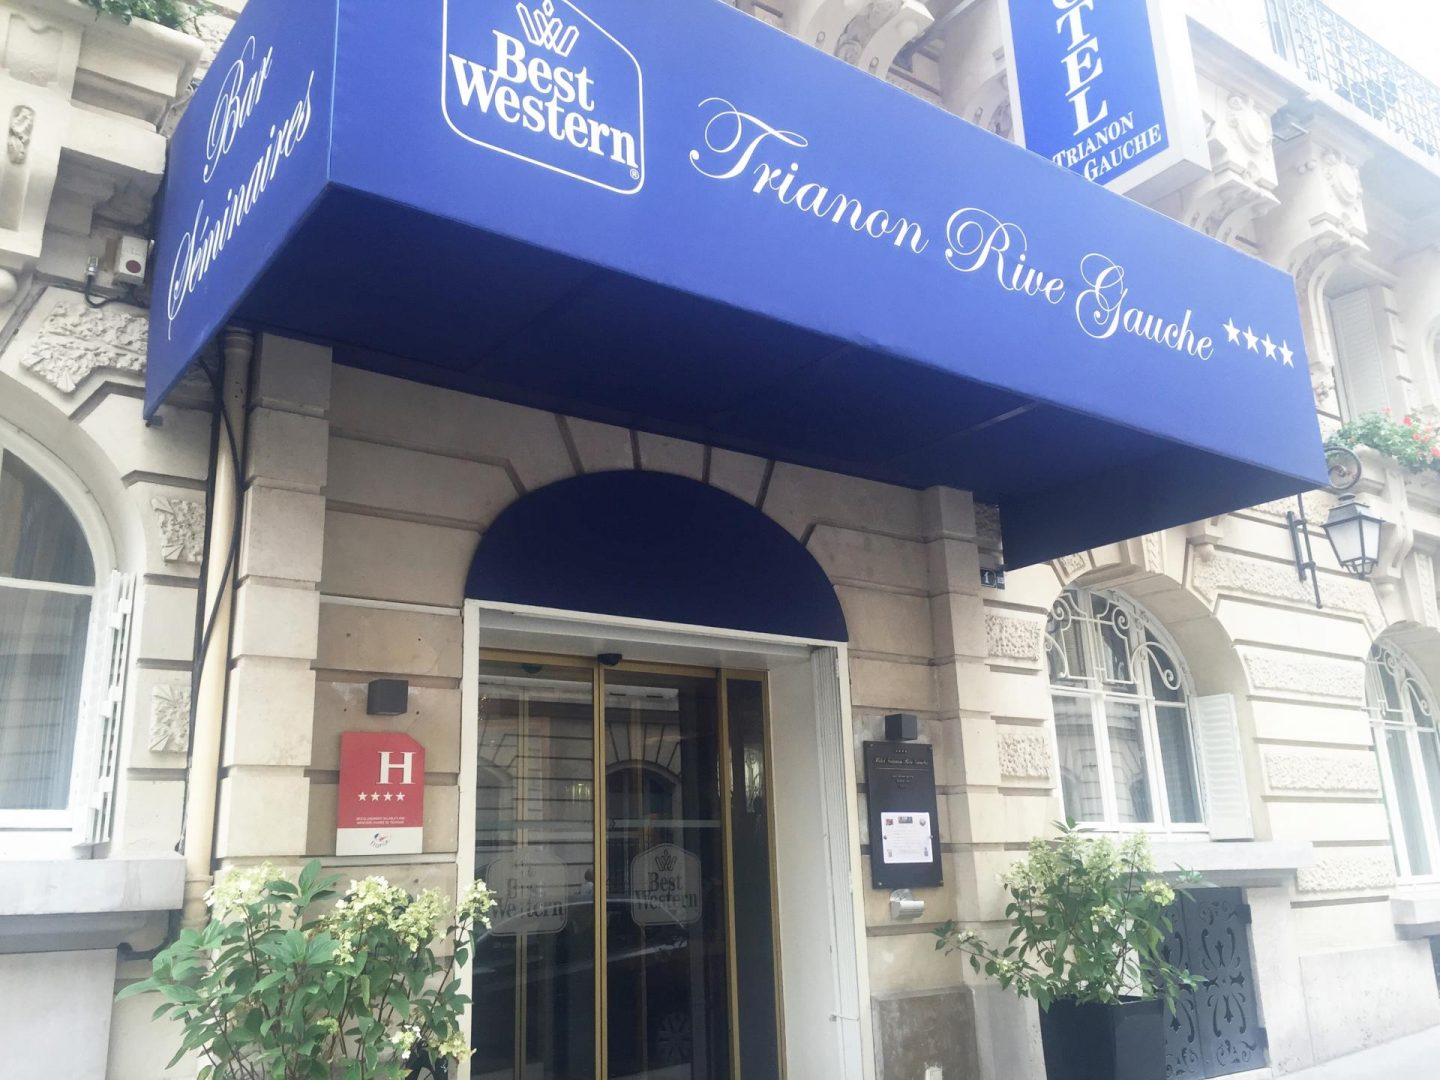 Affordable Luxury At Trianon Rive Gauche Hotel Paris